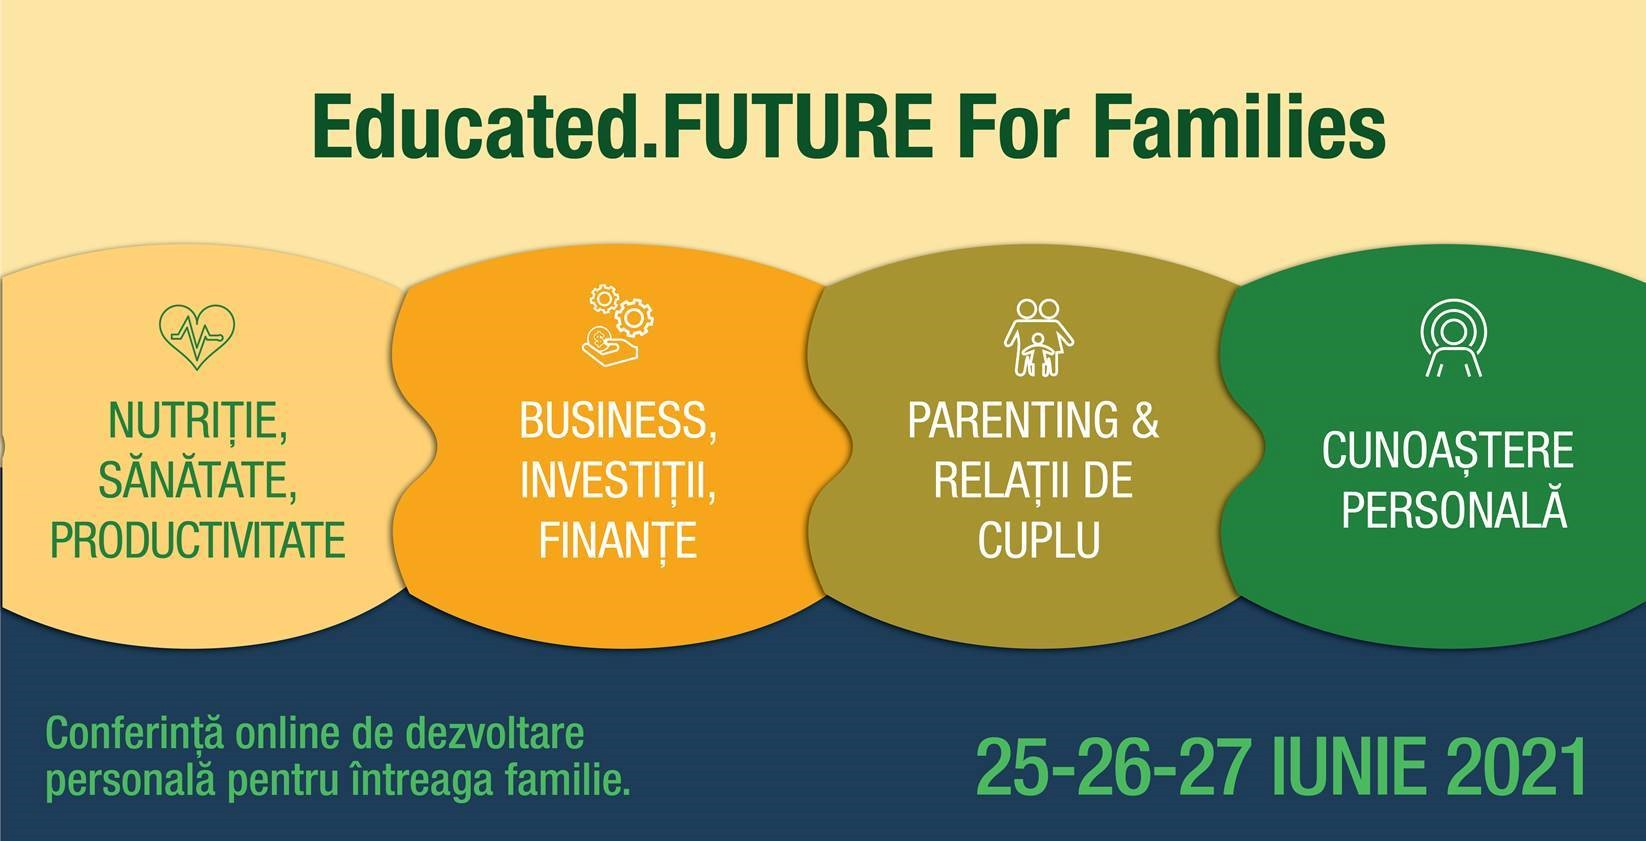 Educated.FUTURE For Families